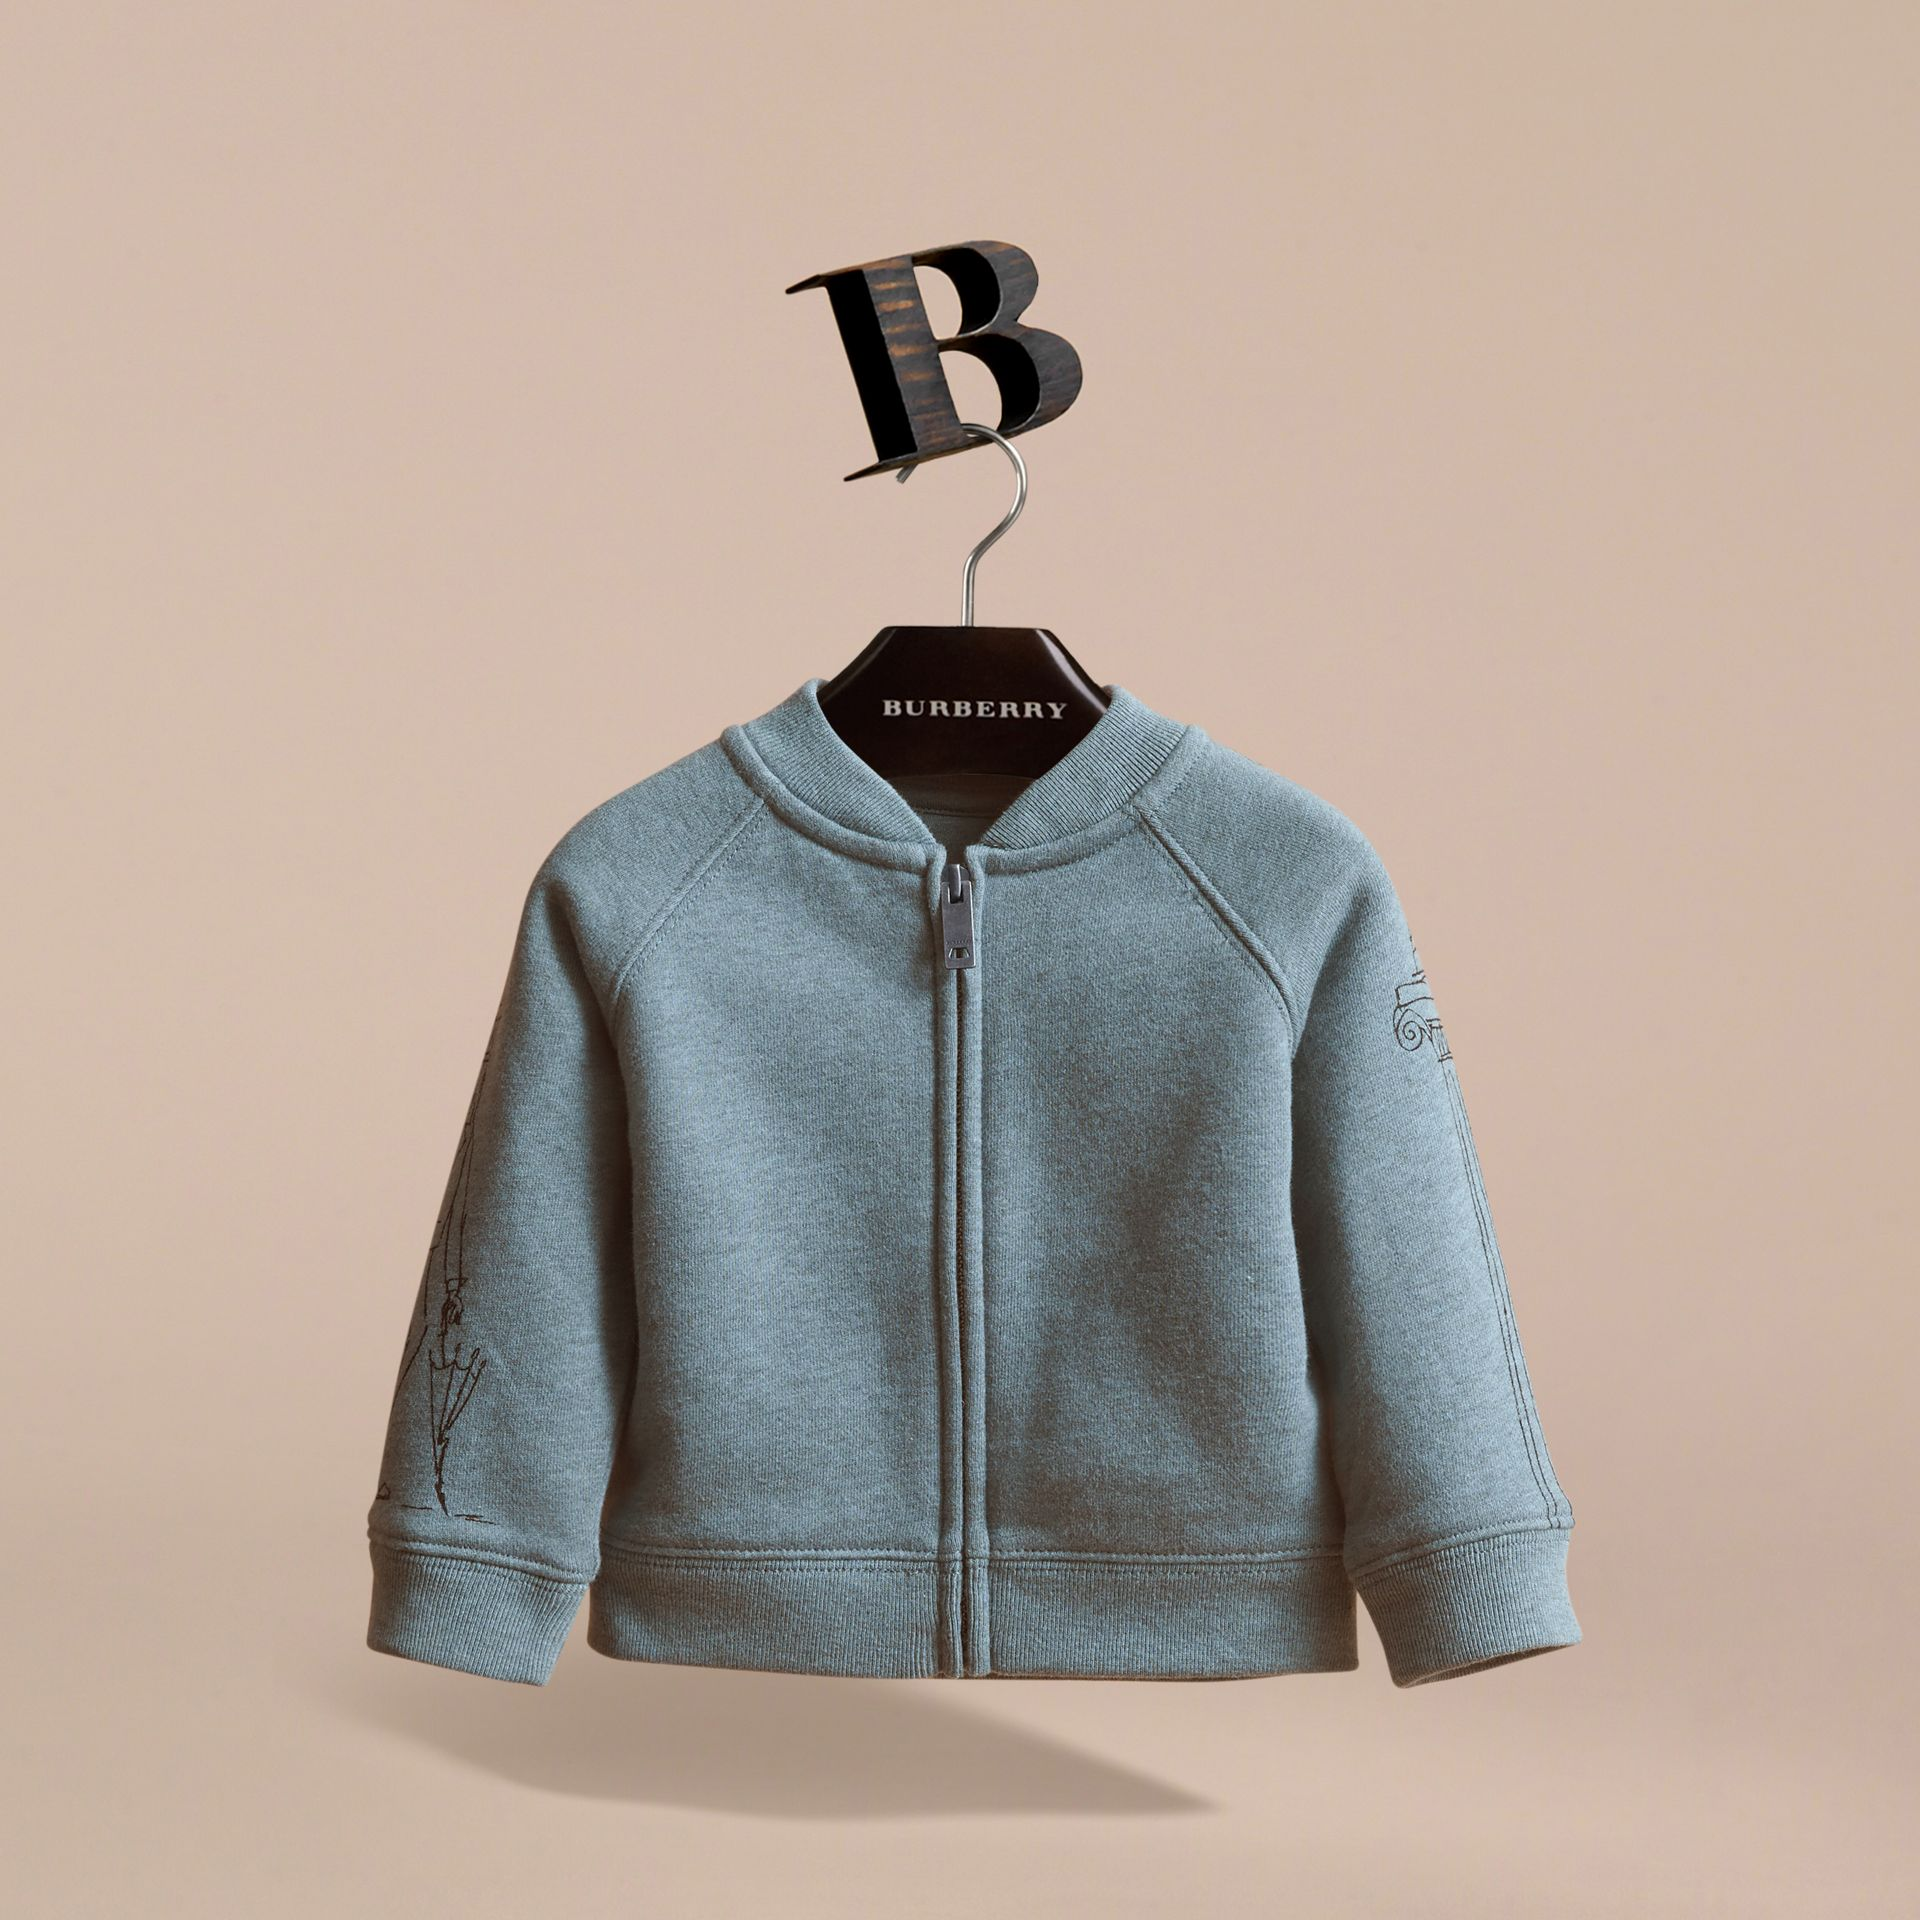 London Icons Print Cotton Zip-front Sweatshirt in Dusty Blue - Children | Burberry United States - gallery image 3